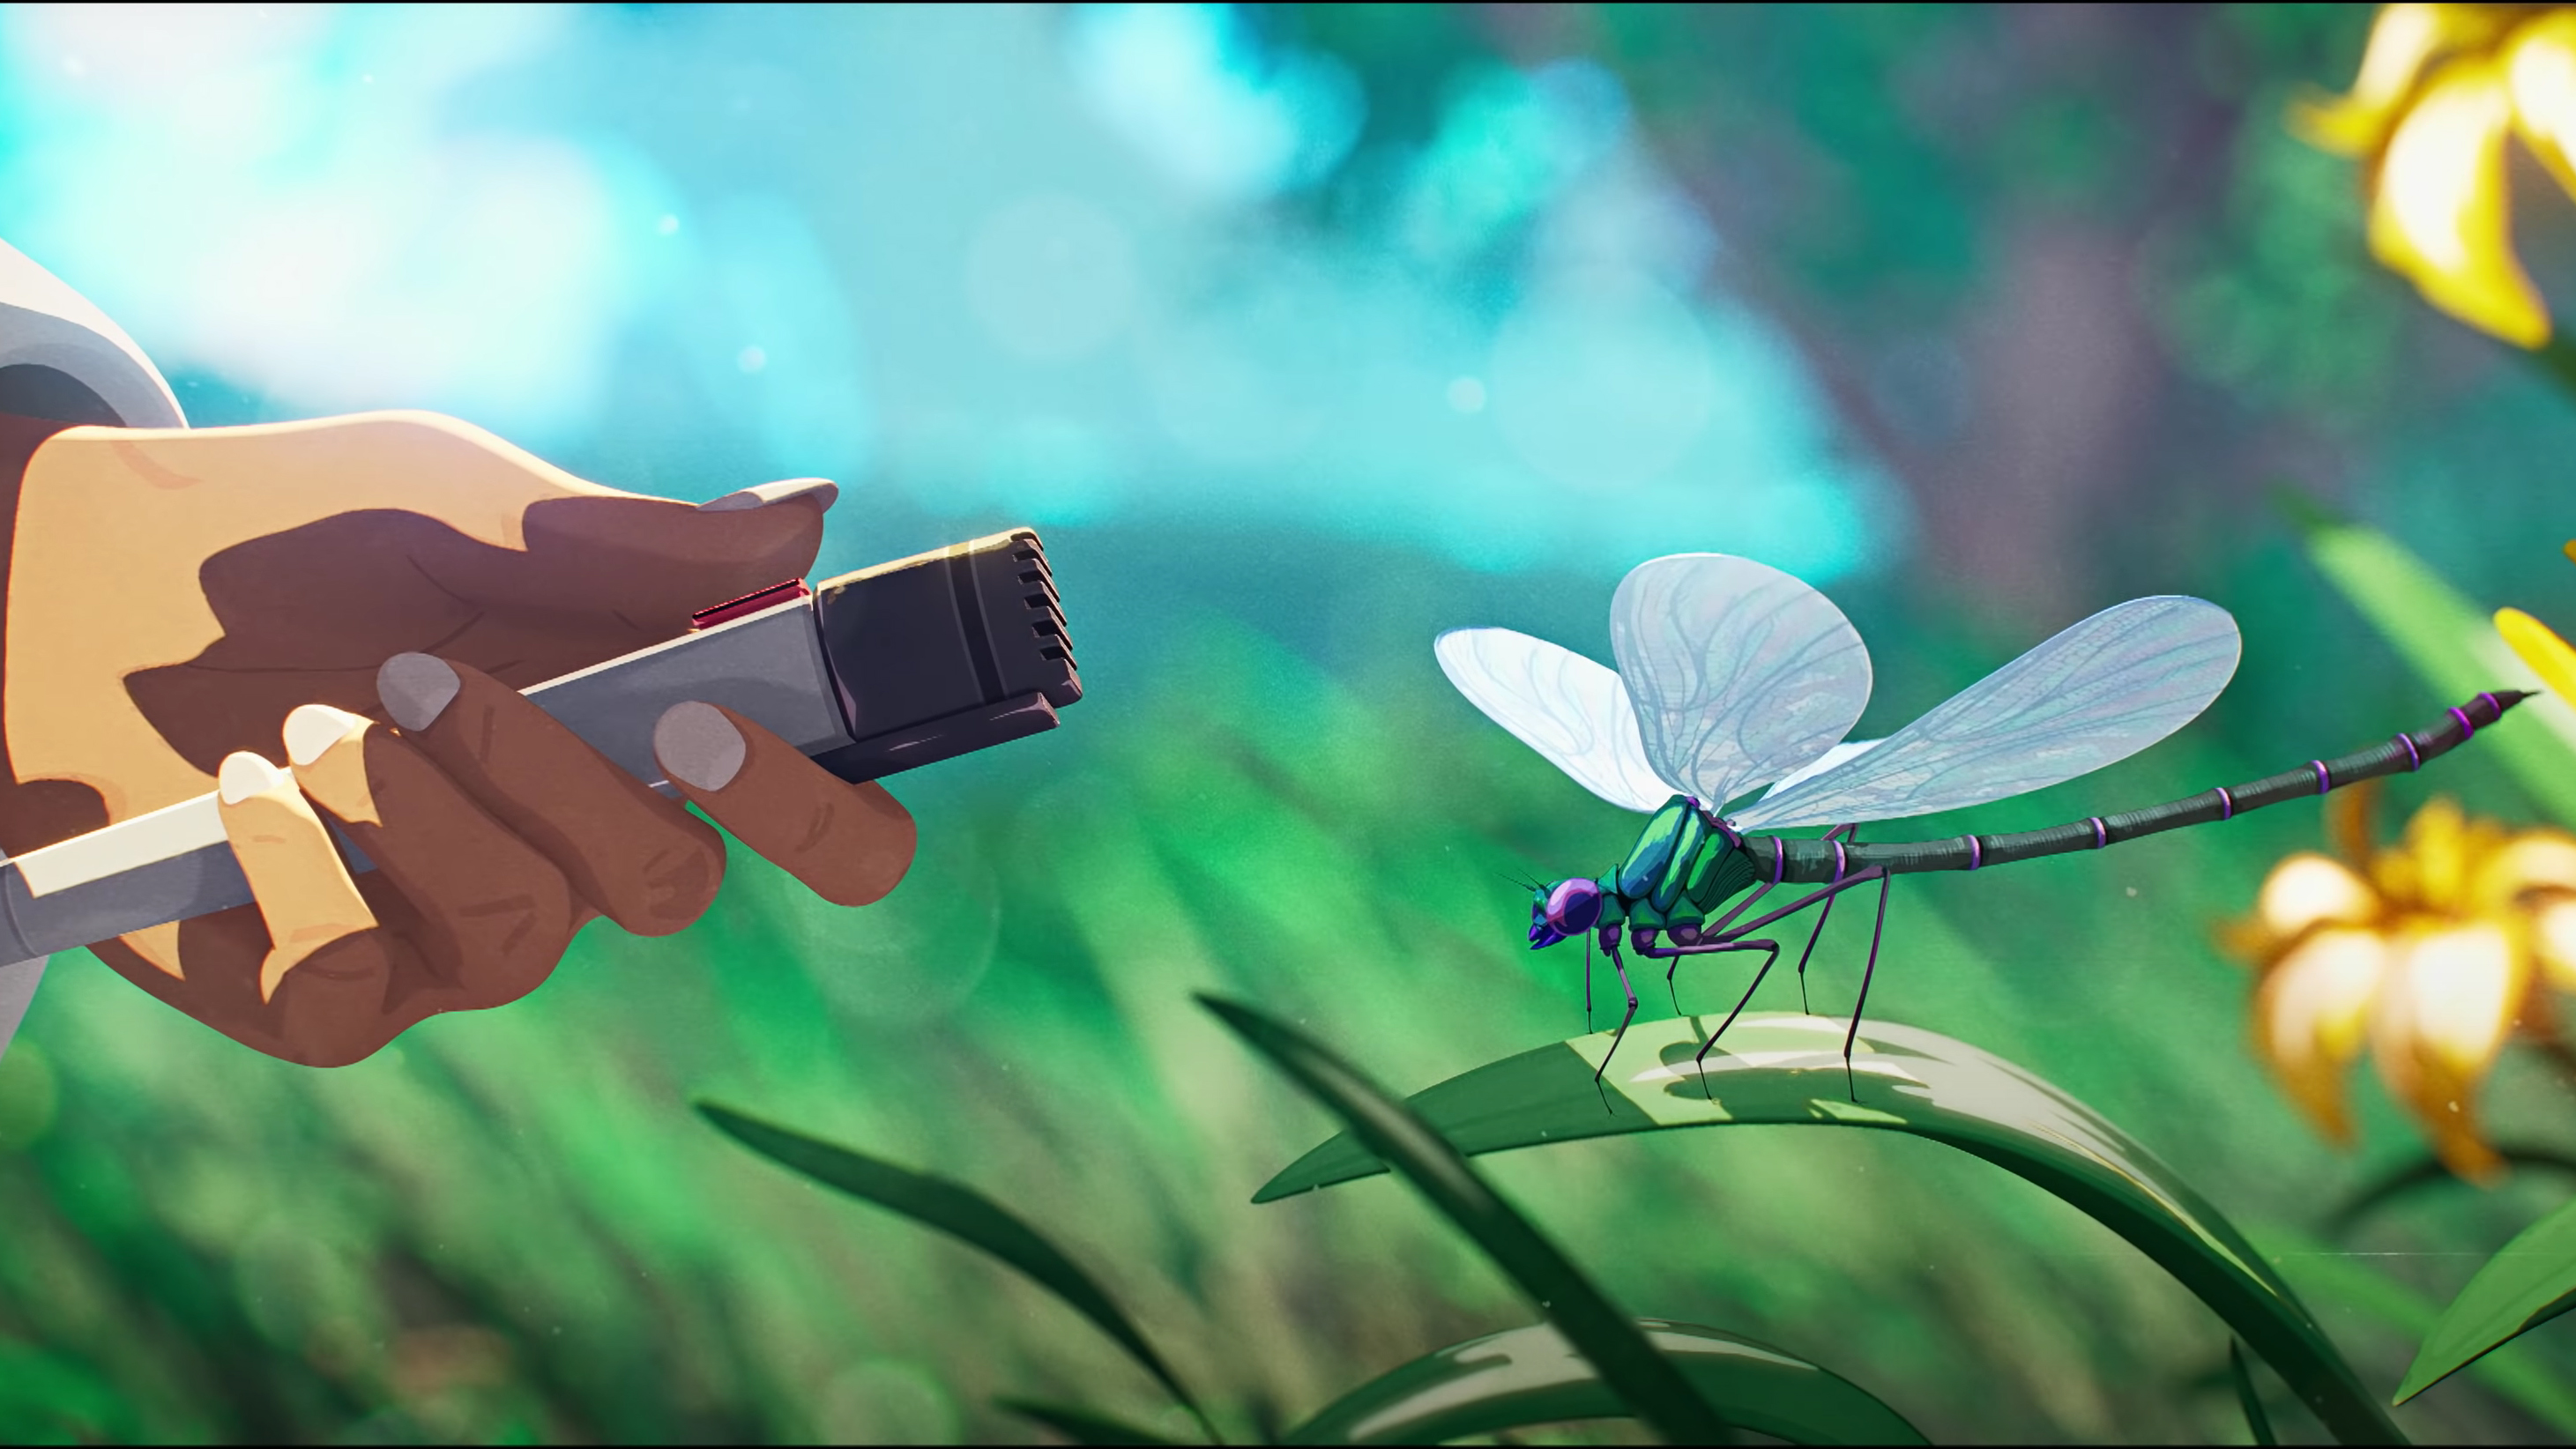 A microphone being held next to a dragonfly